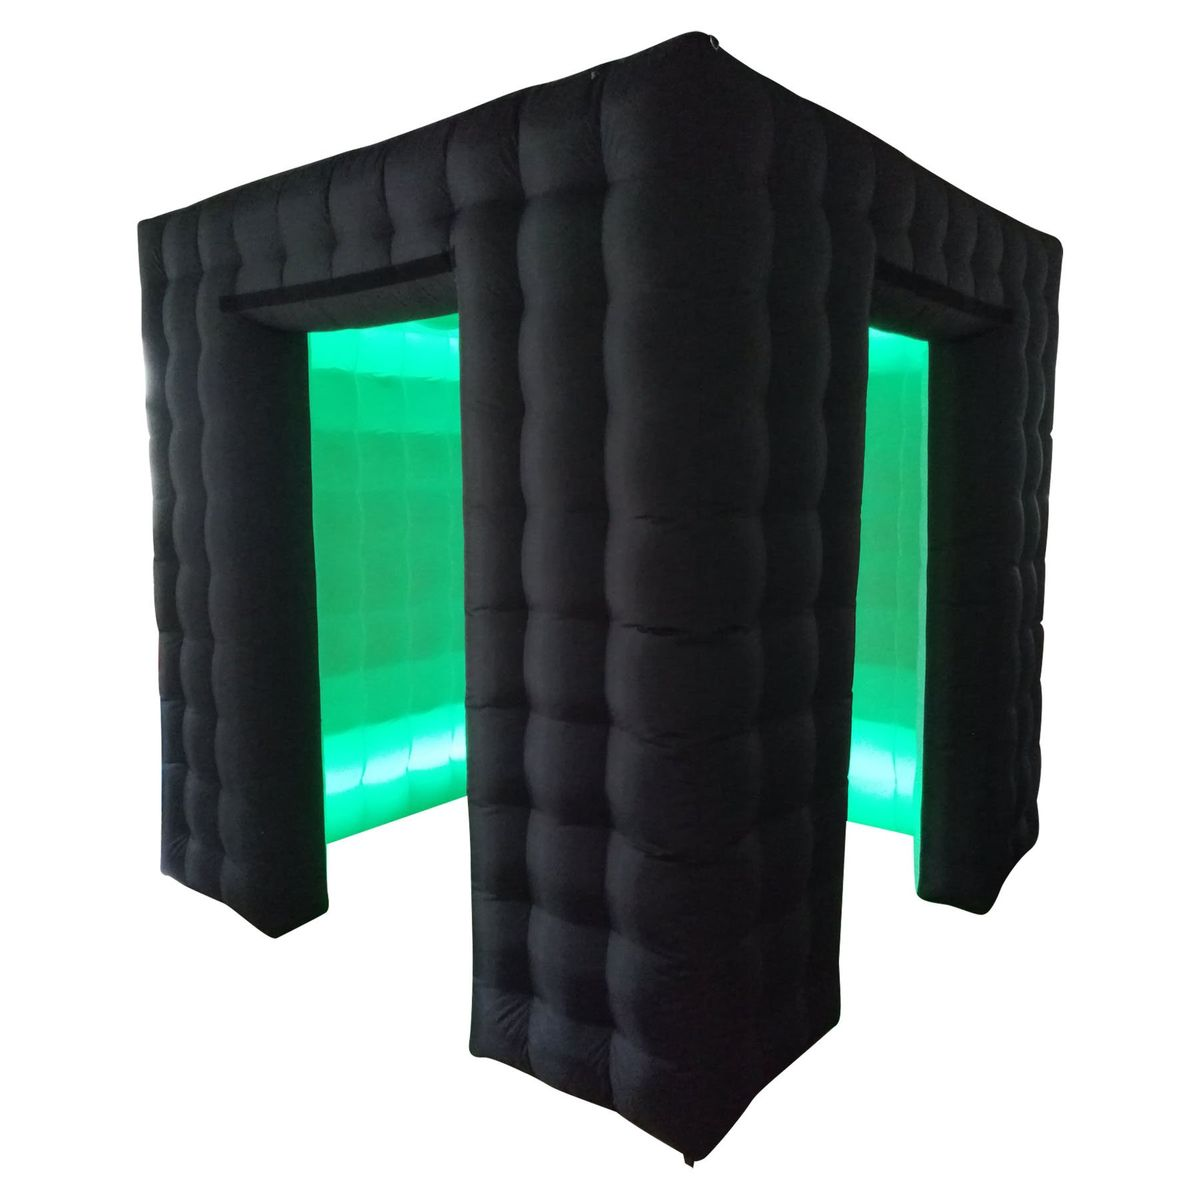 Black-LED-Inflatable-Cube-Photo-Booth-1_4000x@3x.progressive